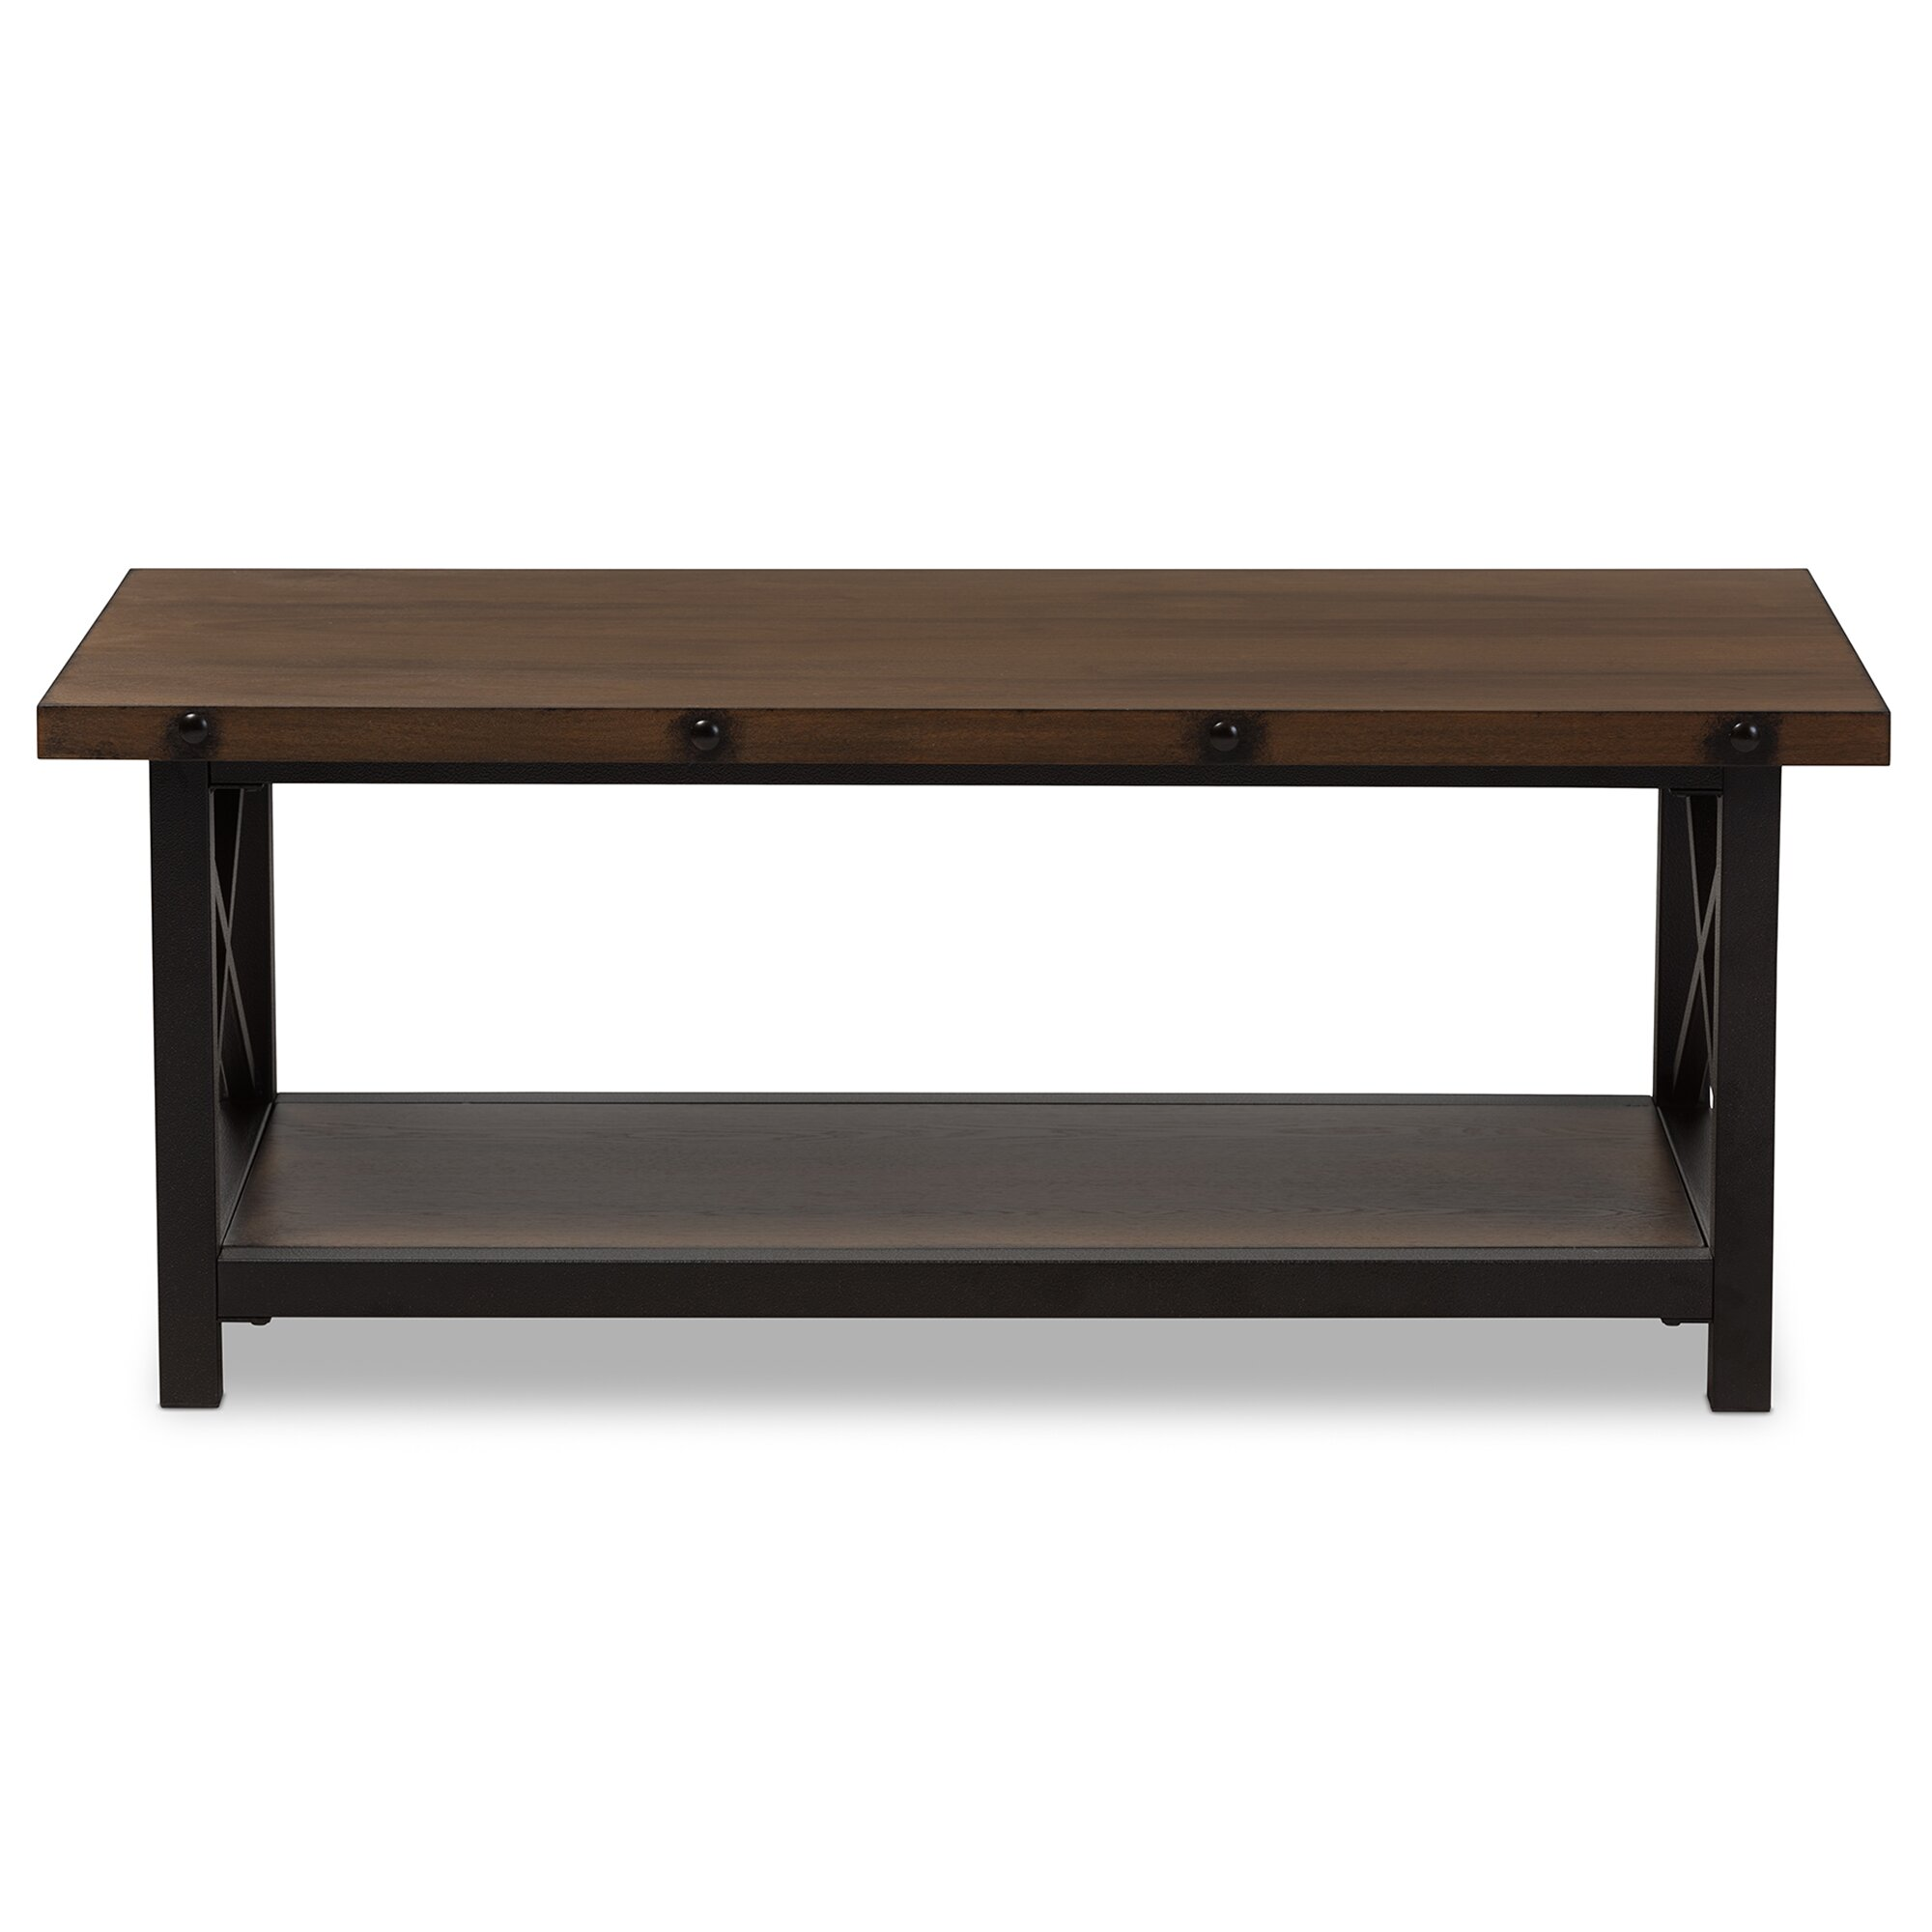 Https Www Wayfair Com Wholesale Interiors Amalea Coffee Table 1421 7195 Wf Whi7837 Html